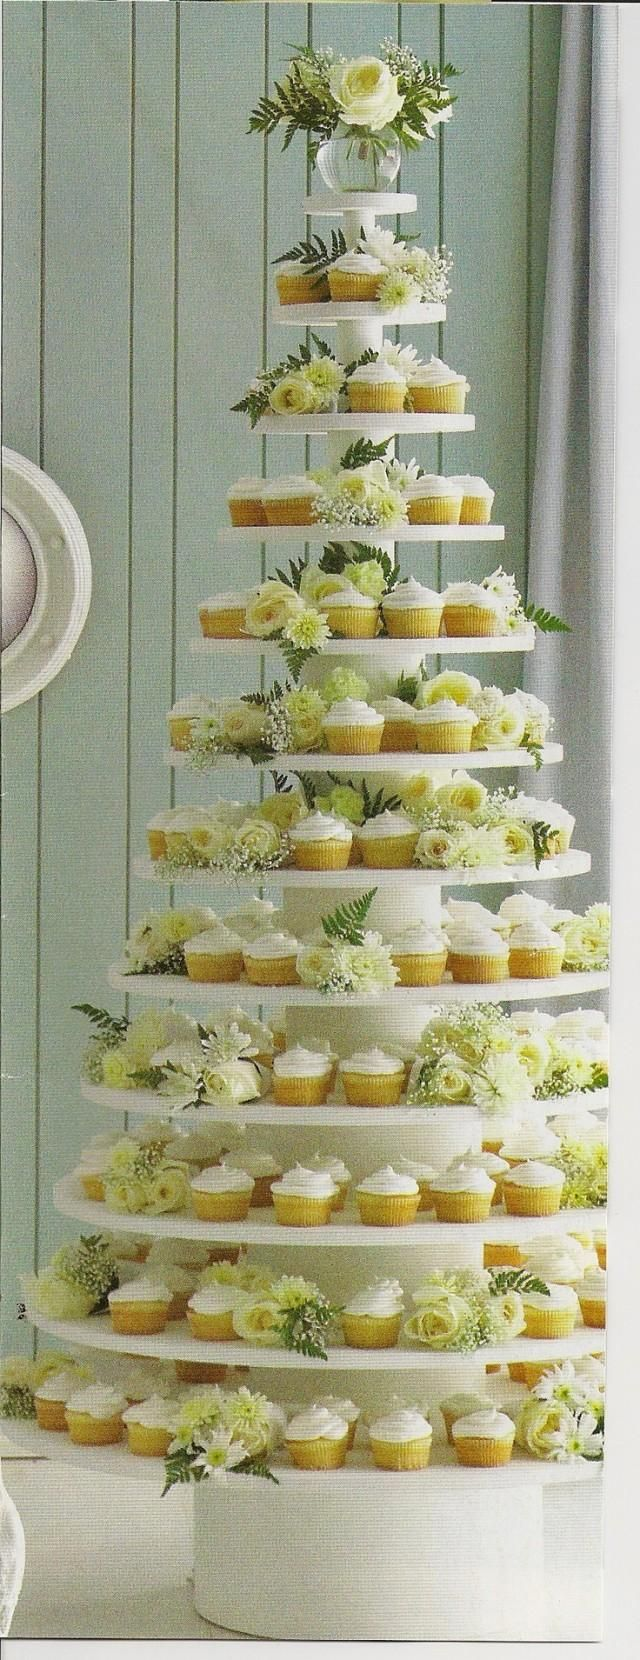 Weddbook is a content discovery engine mostly specialized on wedding concept. You can collect images, videos or articles you discovered  organize them, add your own ideas to your collections and share with other people - Yellow and White Cupcake Tower cupcake #cupcake